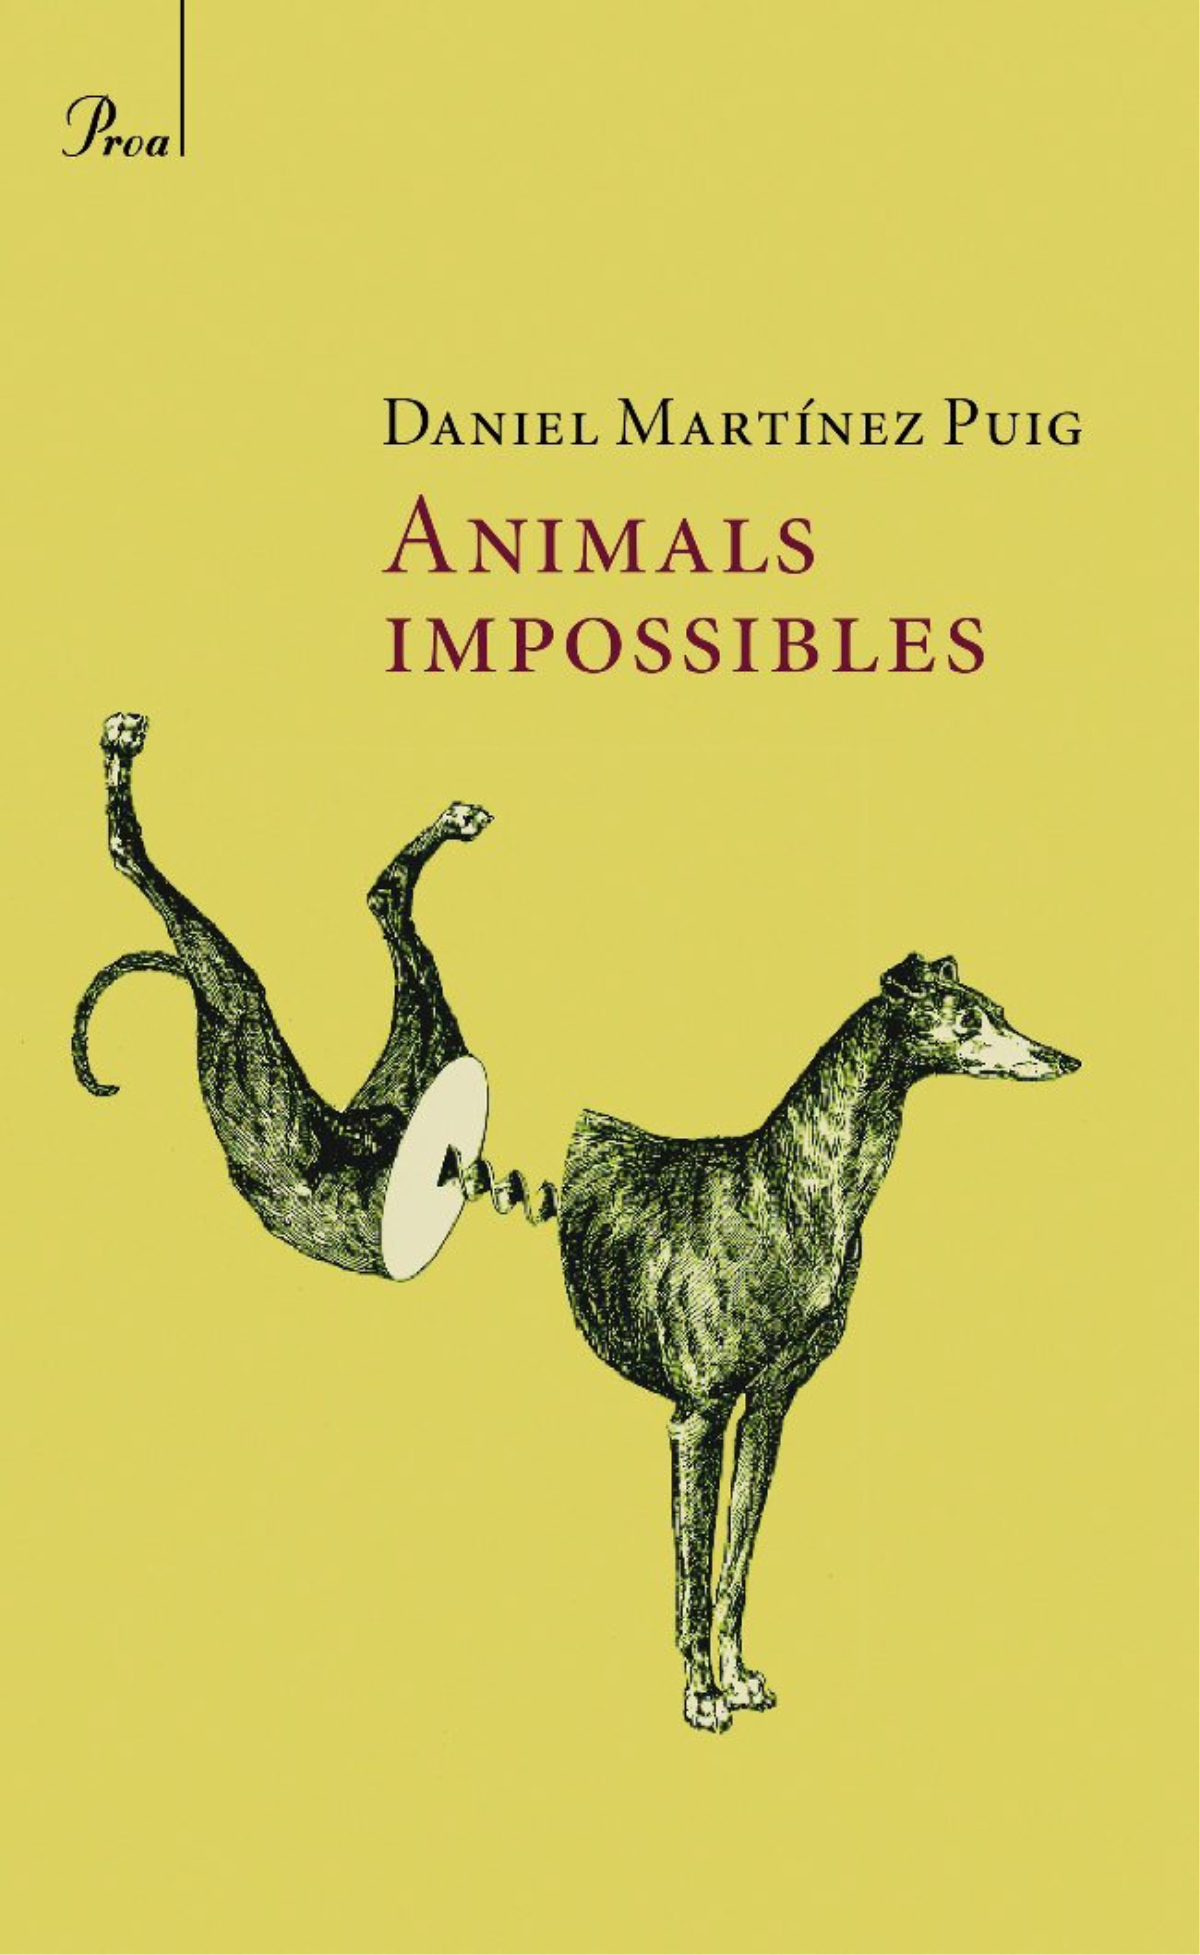 Animals impossibles